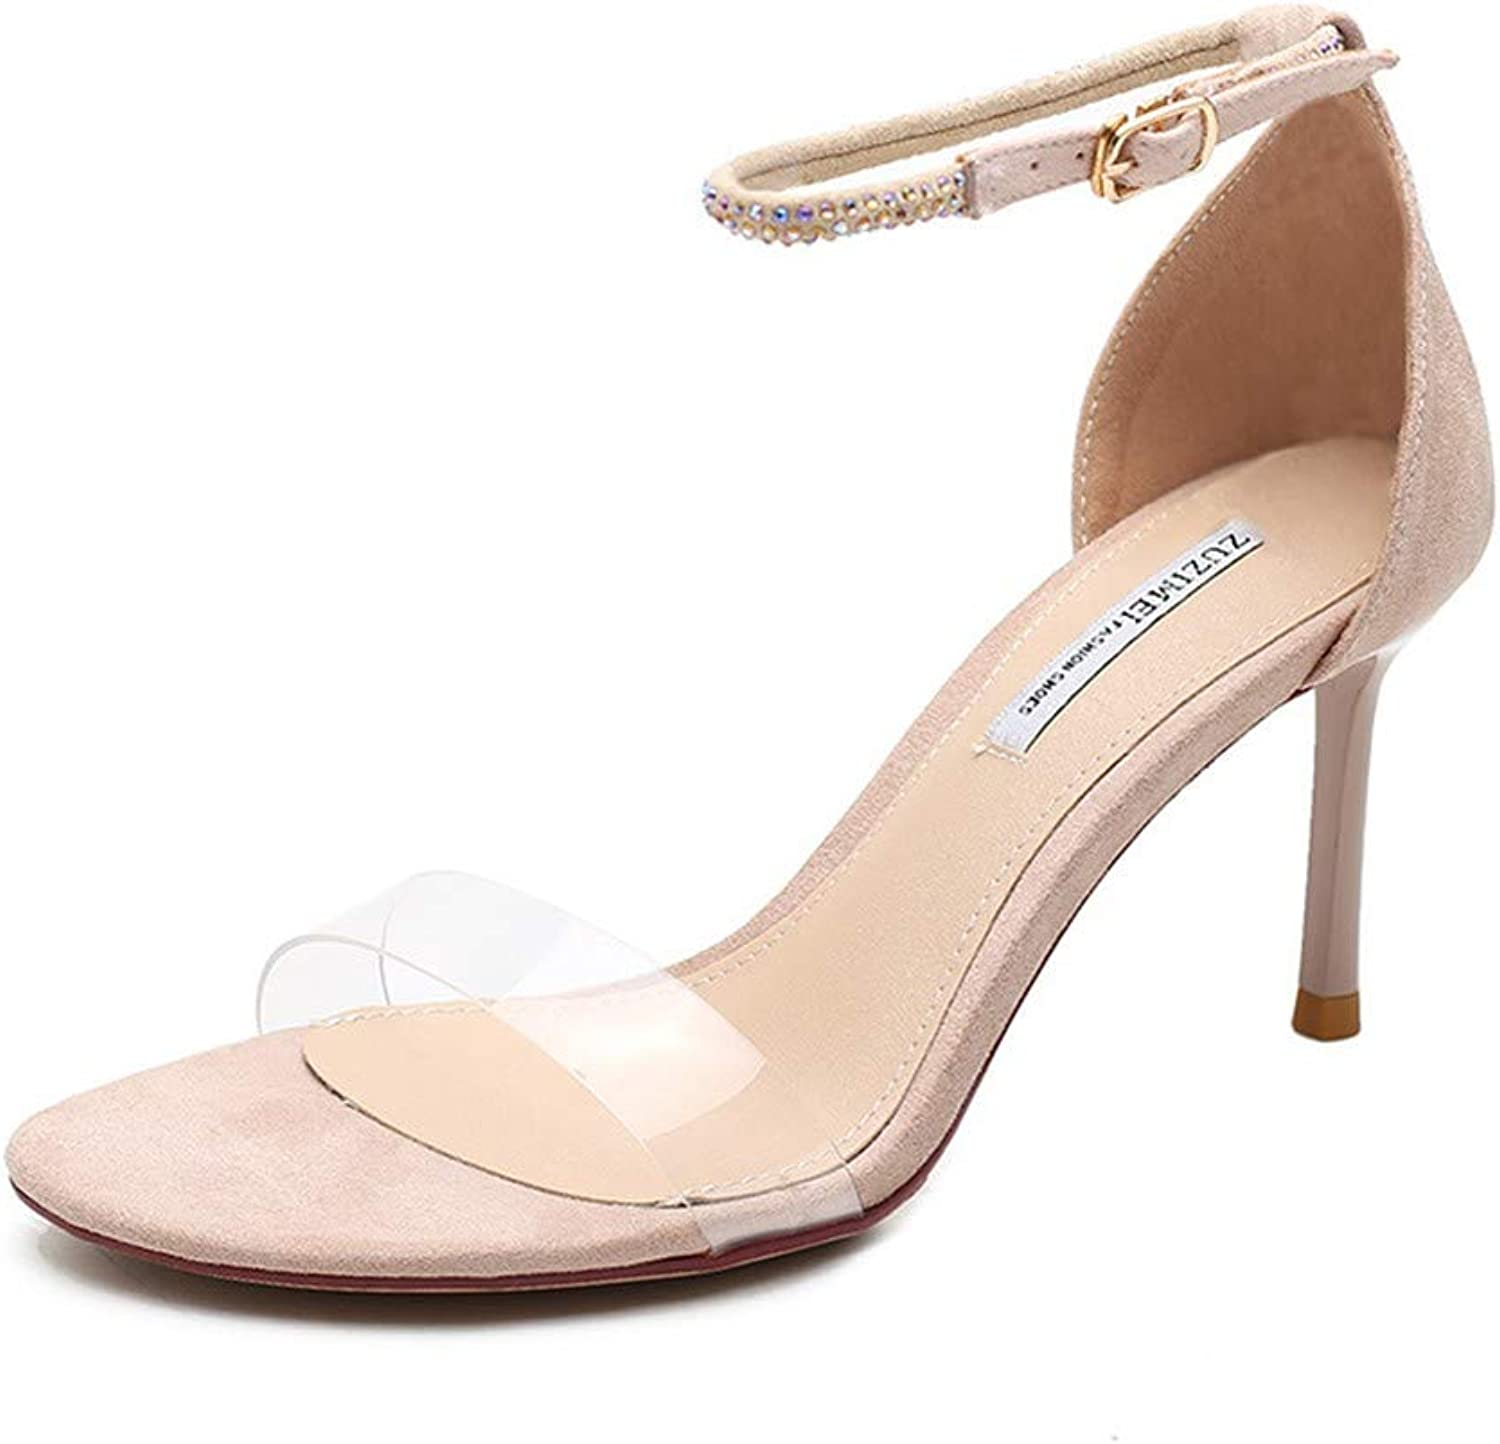 Top Shishang Women's Ankle Strap Peep Toe Extreme High Heel Pumps Wedding Party Dress Stiletto Slip On Sandals Apricot